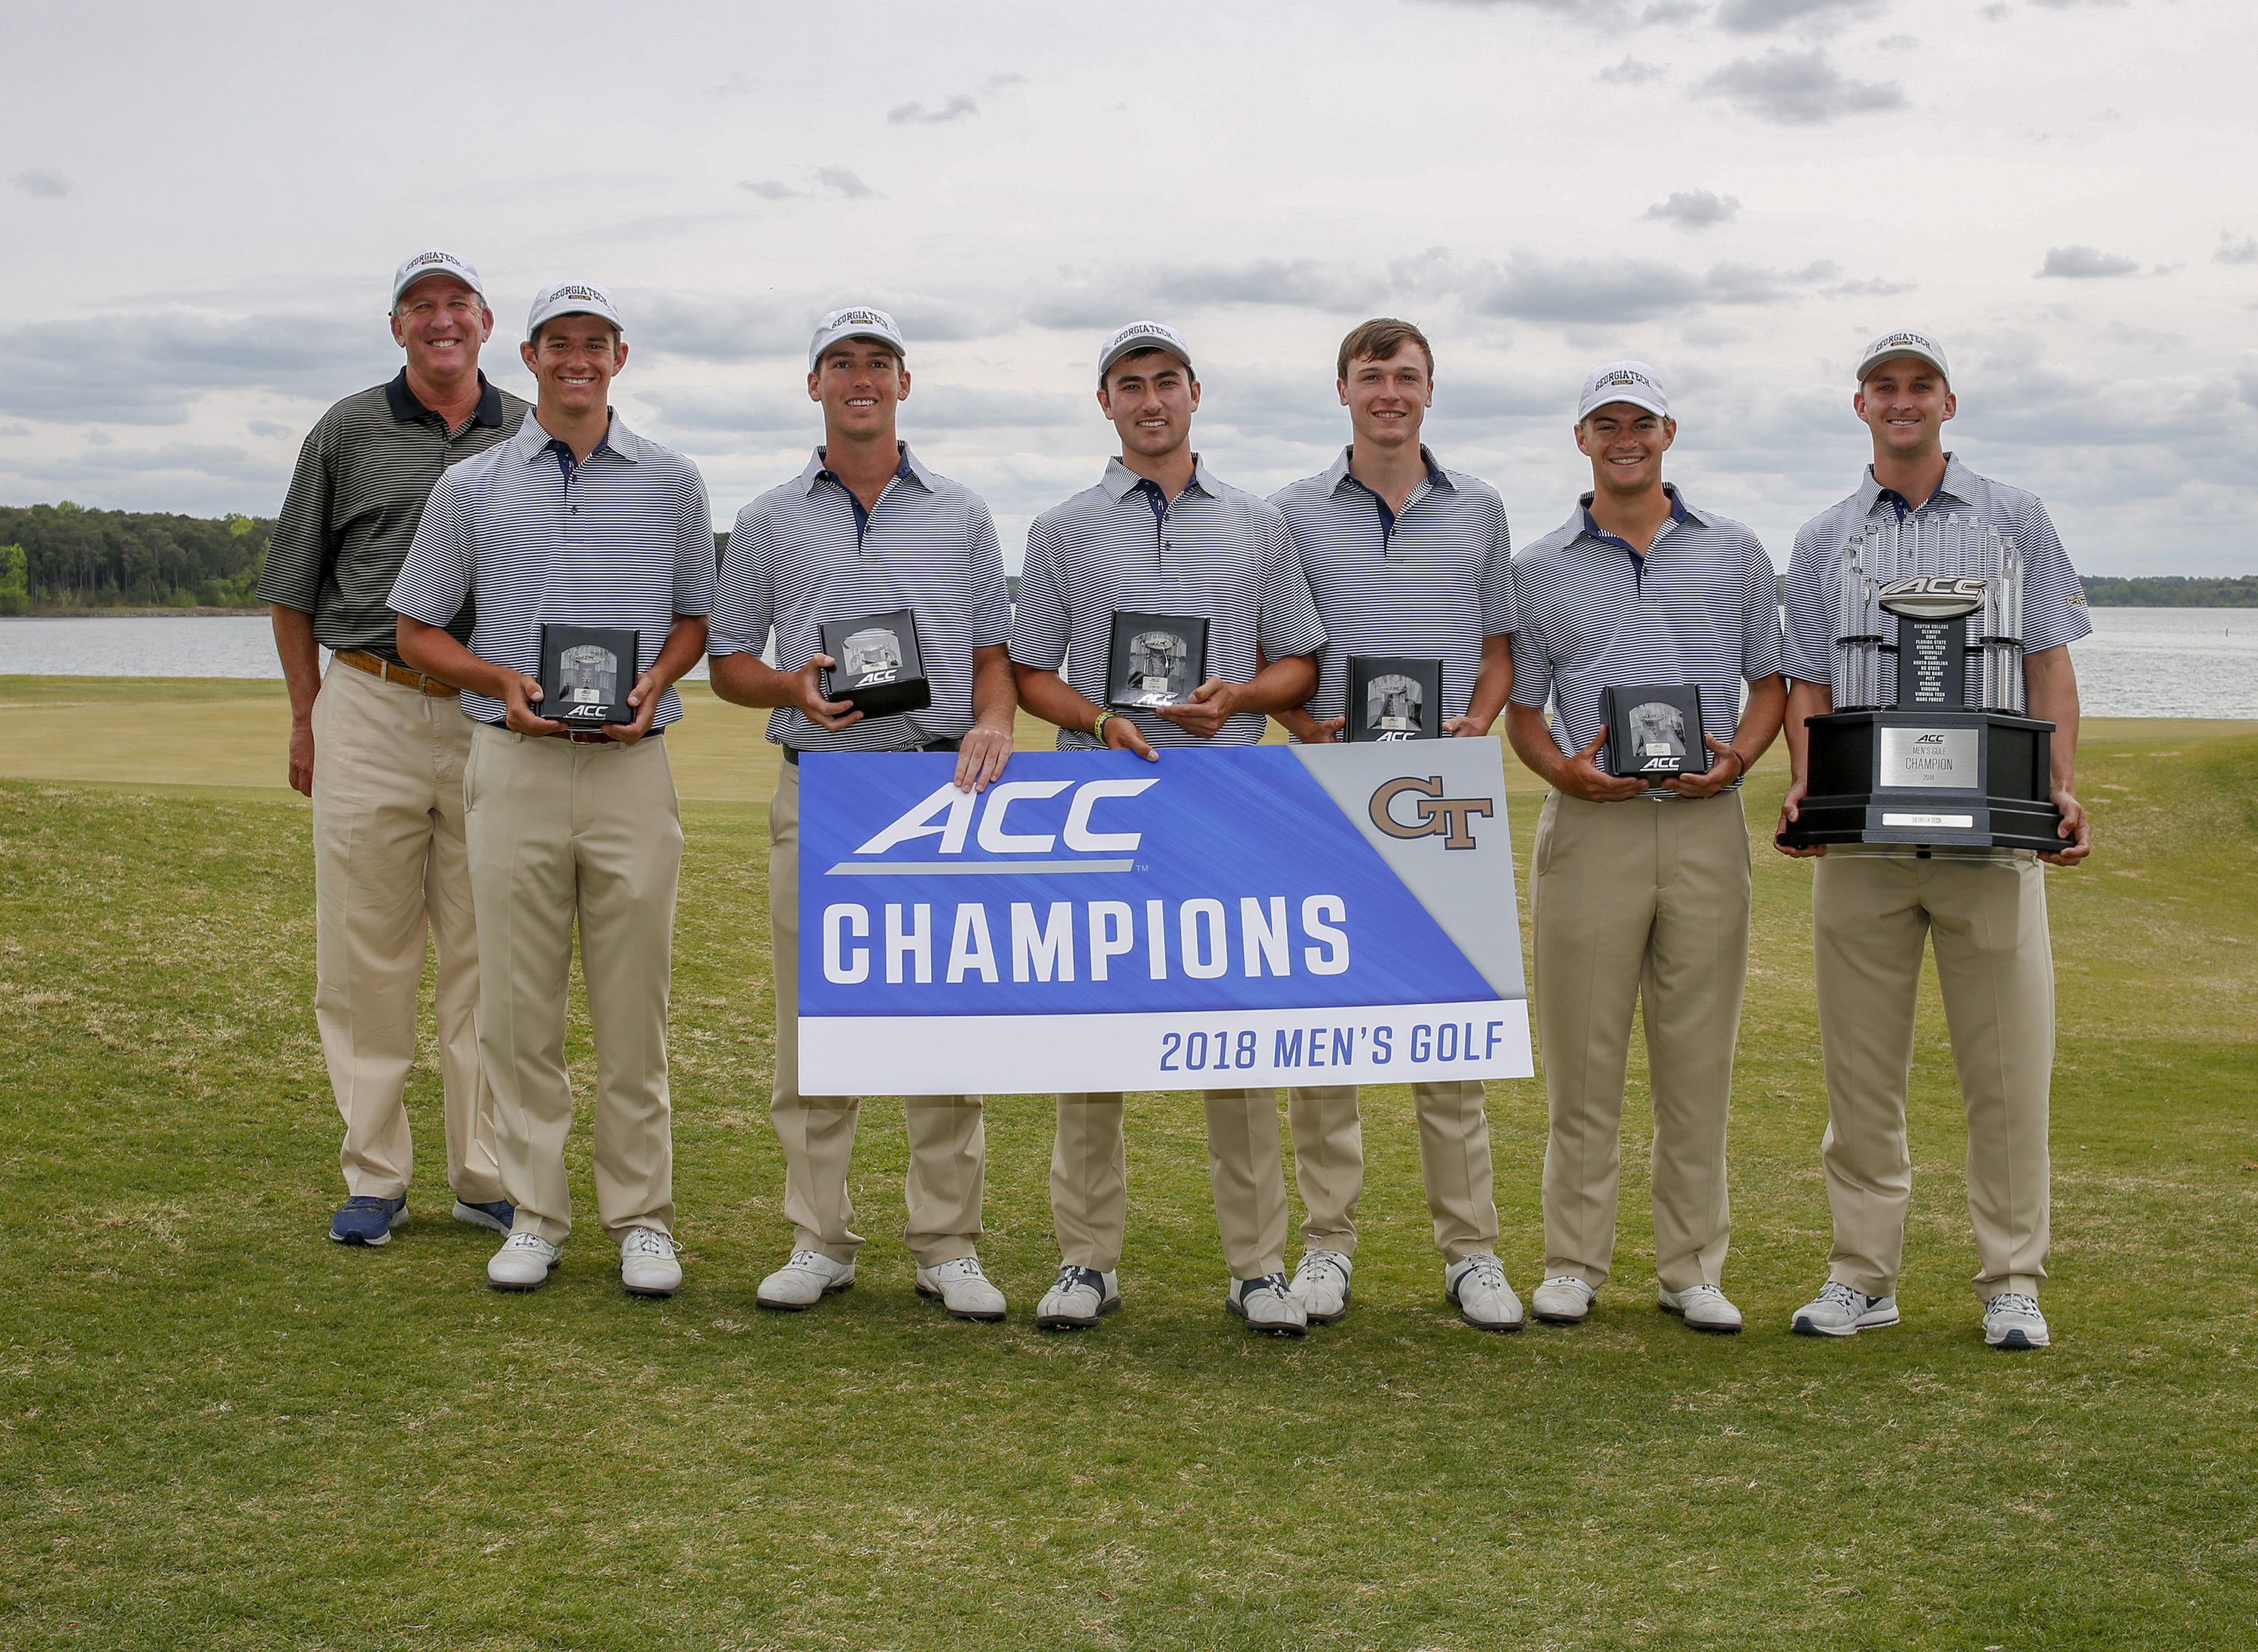 Georgia Tech holds their trophies after winning the the 2018 ACC Men's Golf Championship in New London, N.C., Sunday April 22, 2018. From left: head coach Bruce Heppler, Noah Norton, Andy Ogletree, Chris Petefish, Luke Schniederjans, Tyler Strafaci, assistant coach Drew McGee. (Photo by Nell Redmond, theACC.com)